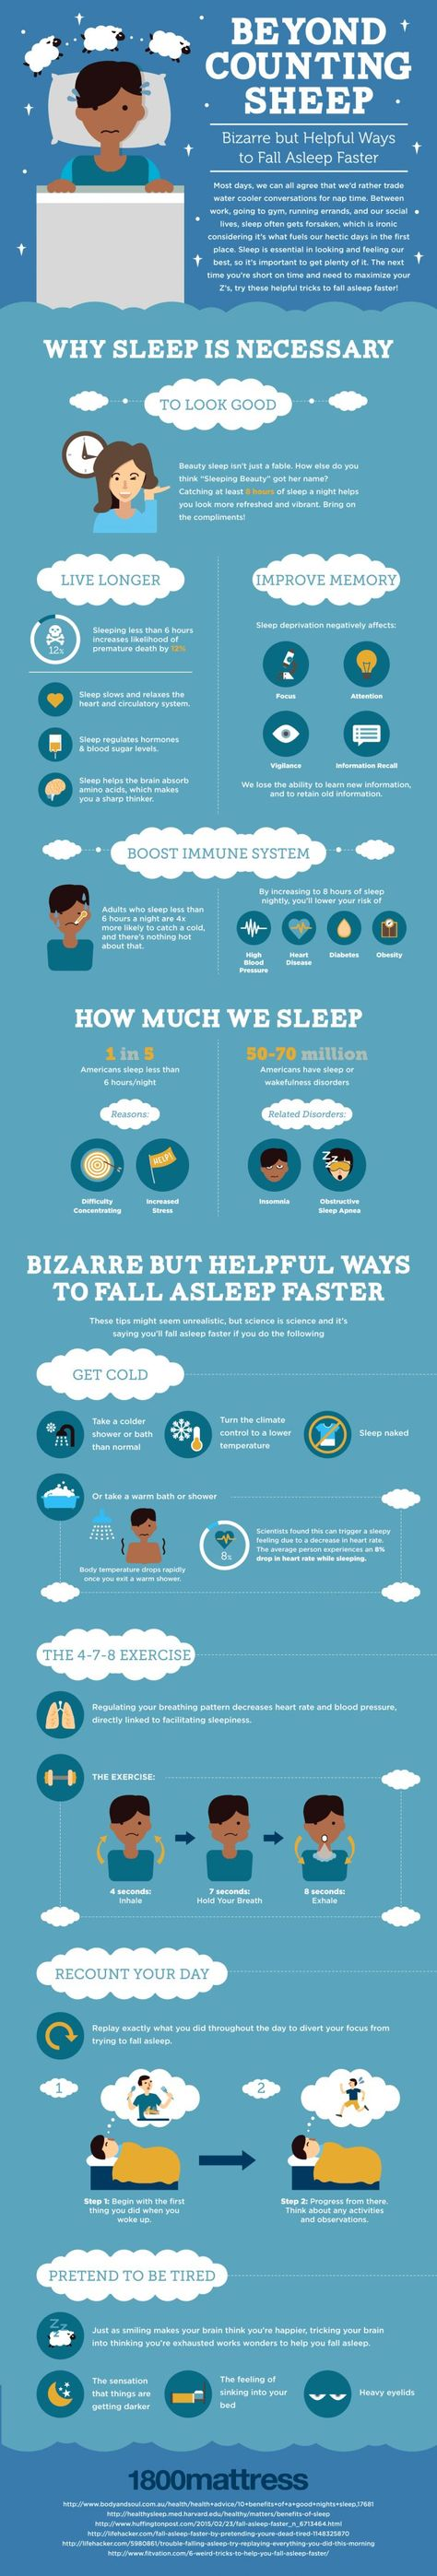 Four Bedtime Tricks to Help You Fall Asleep Faster